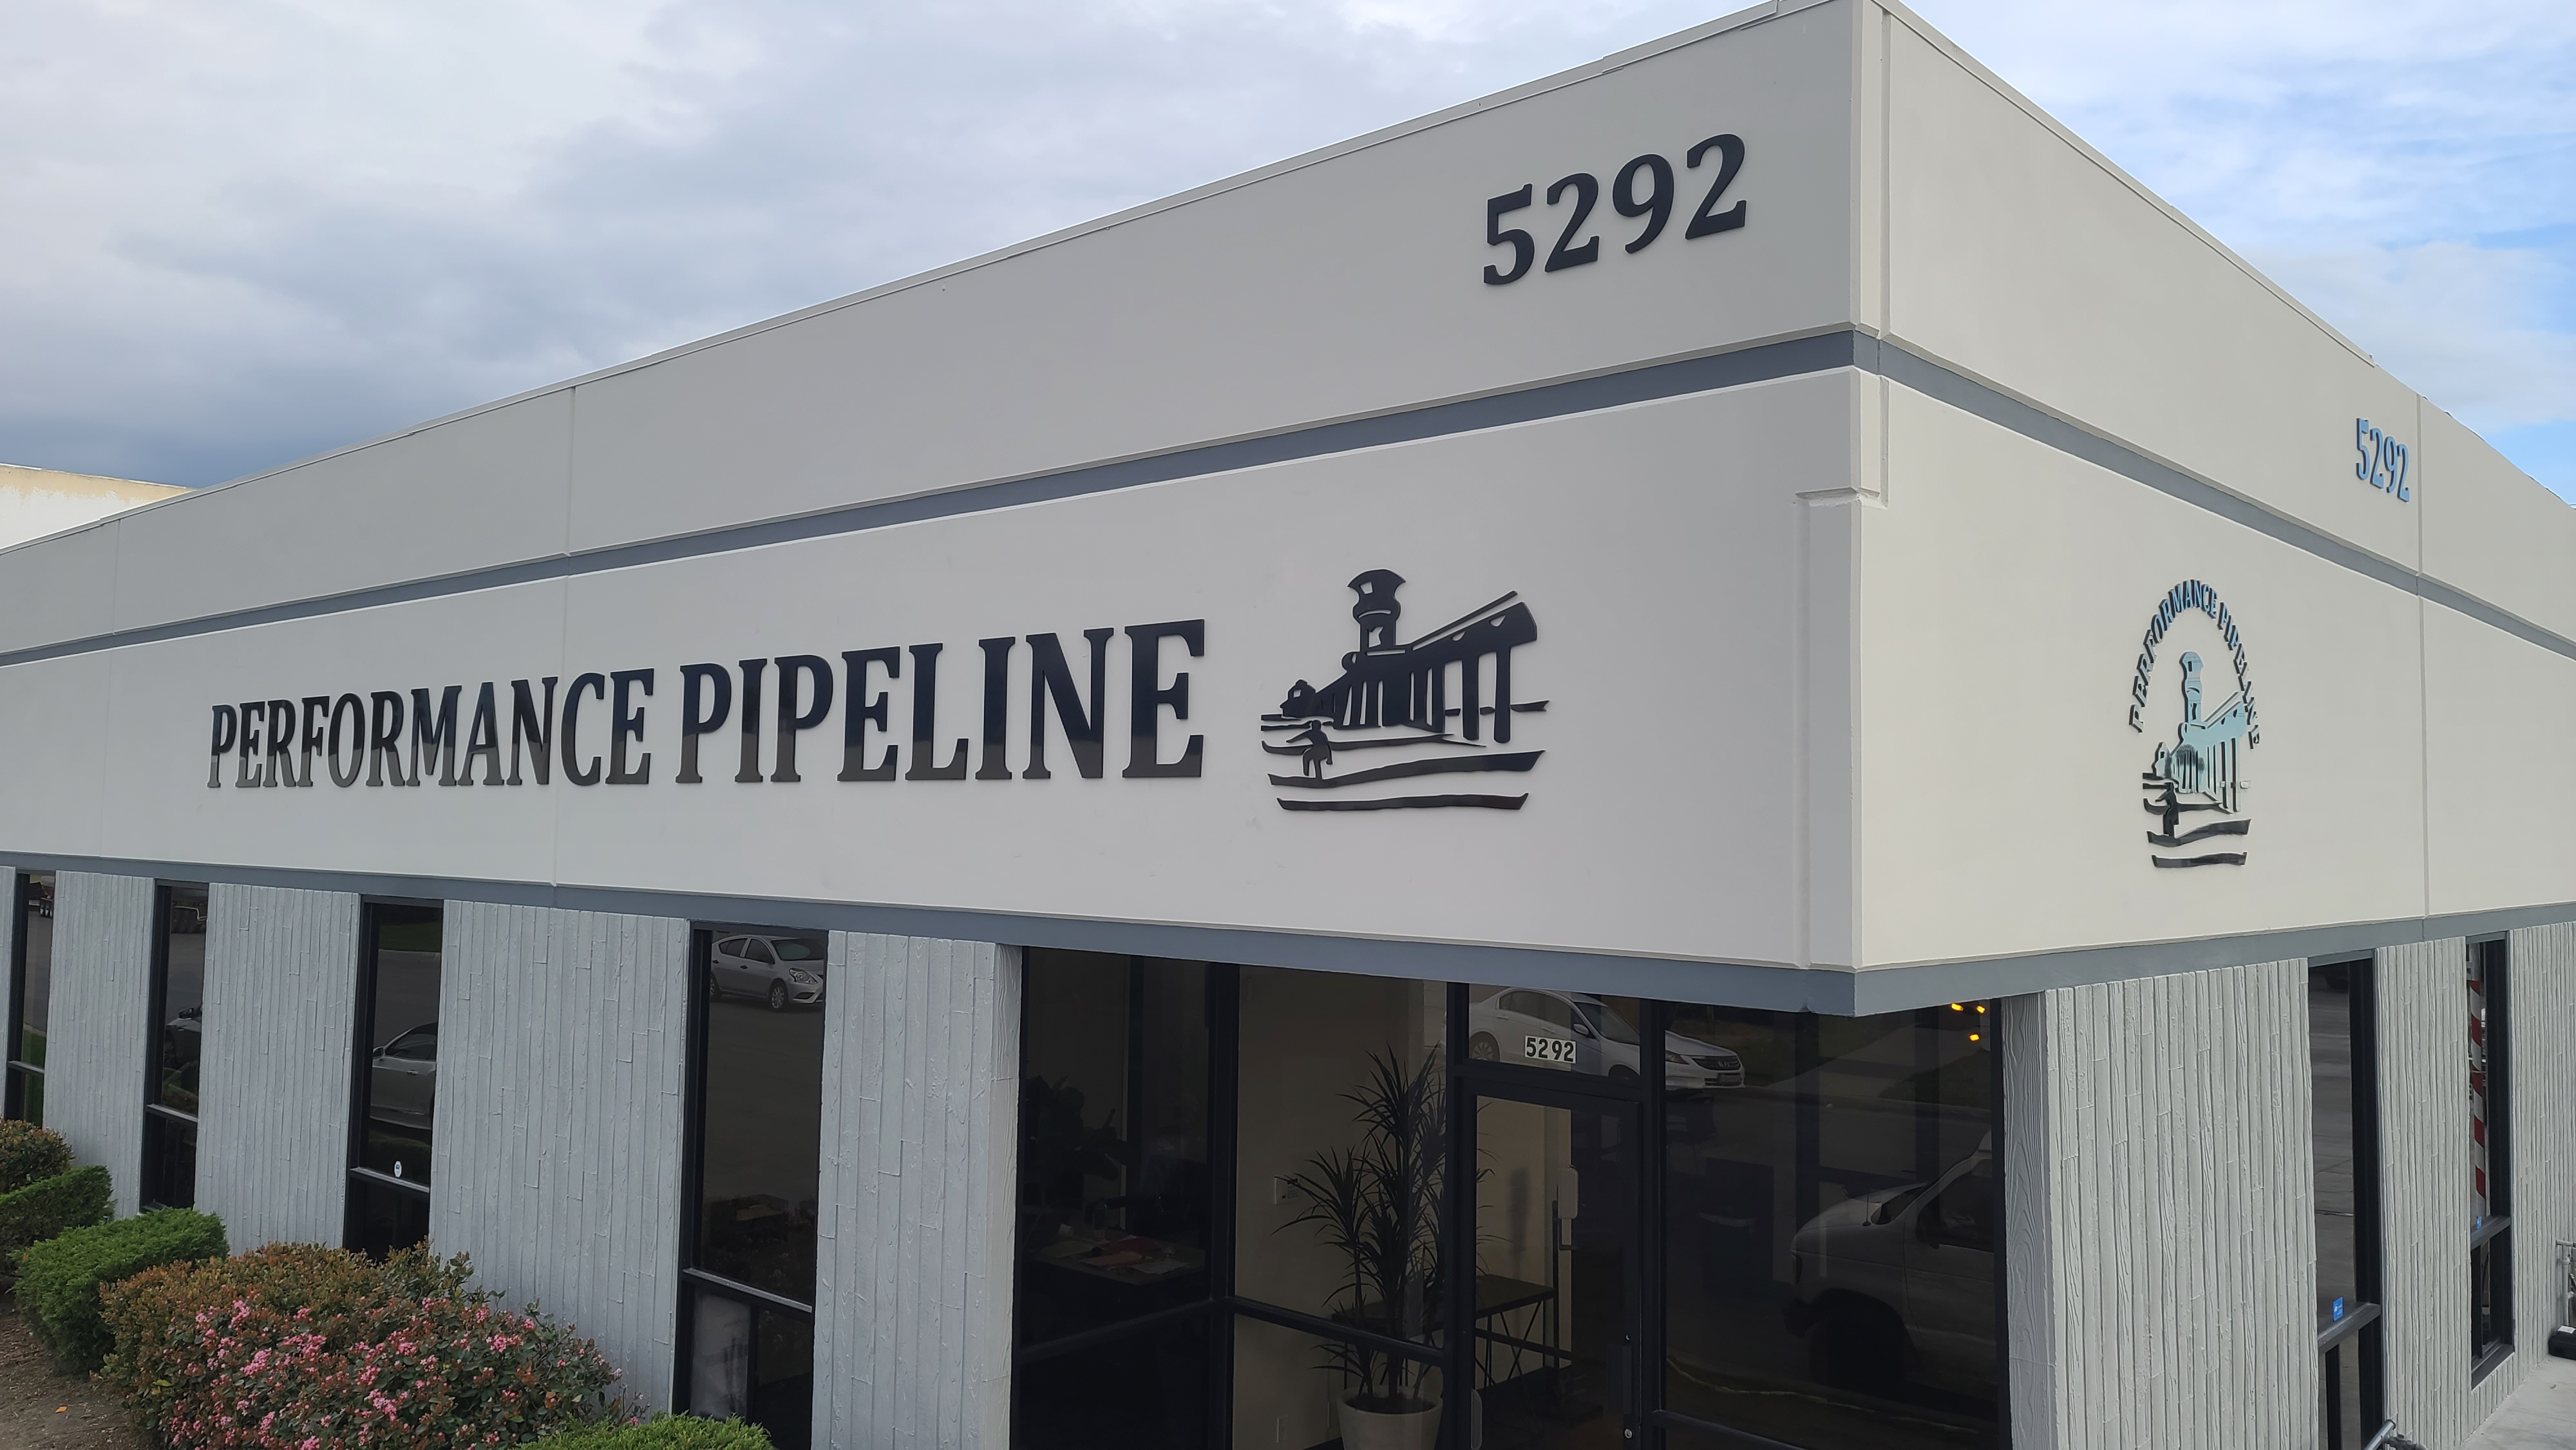 This set of dimensional letters is part of our Business Sign Package for Perfromance Pipeline in Huntington Beach.